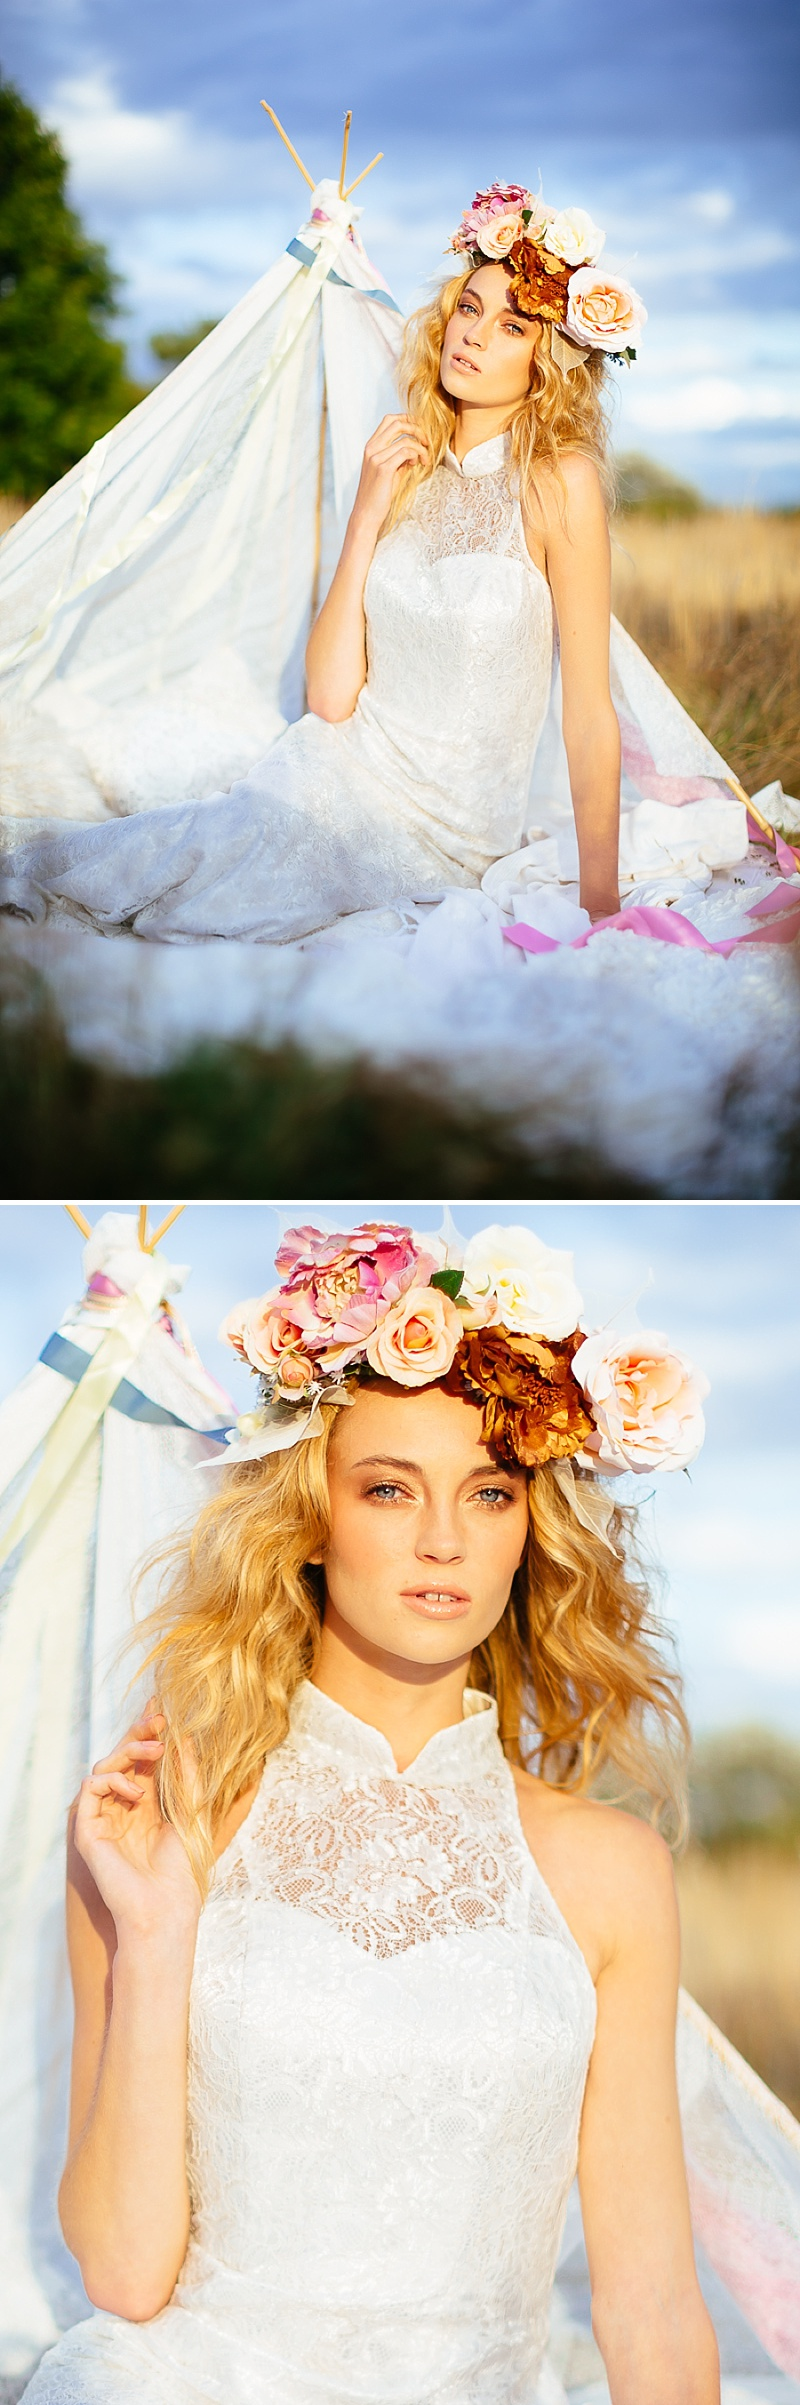 A Boho Earth-Child Themed Bridal Inspiration Shoot, Gowns by Diane Harbridge, Images from Phil Drinkwater_0004